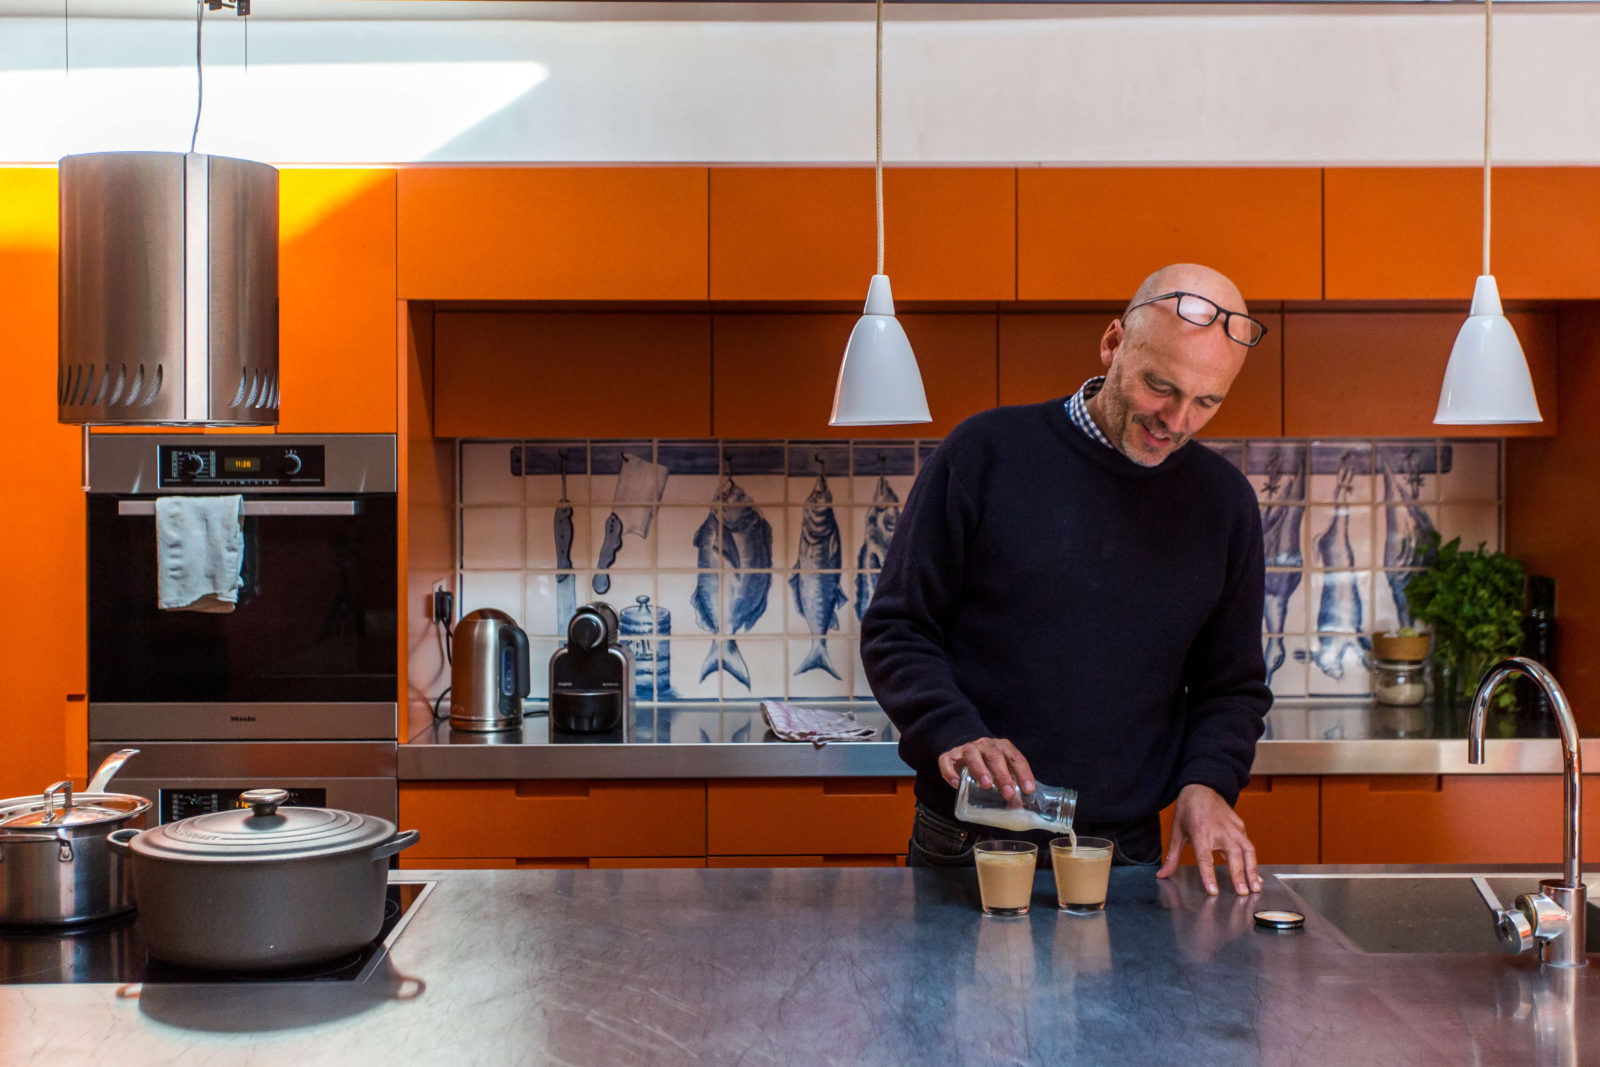 My Modern House: architect Henning Stummel invites us into the Tin House